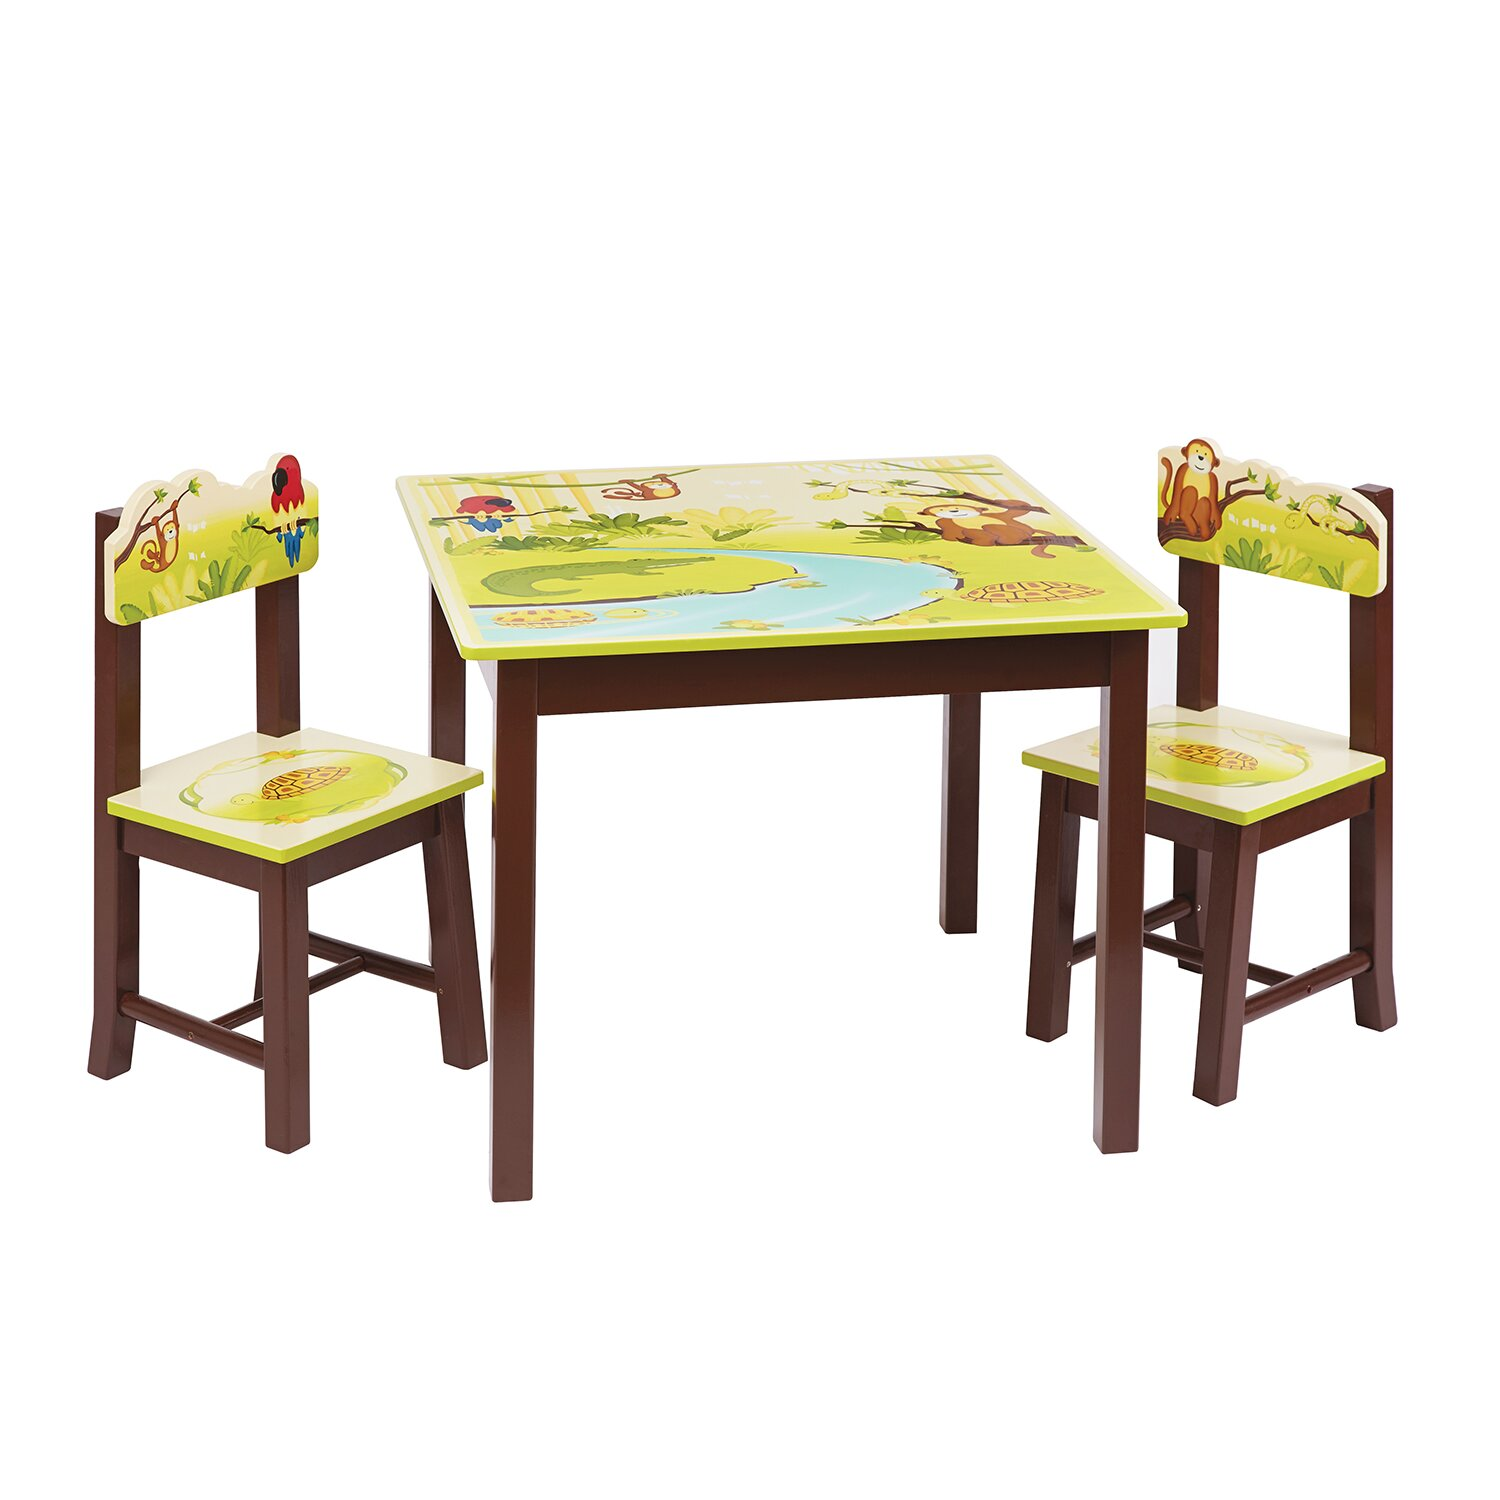 Table Set For Kids Guidecraft Jungle Party Kids 3 Piece Rectangle Table And Chair Set